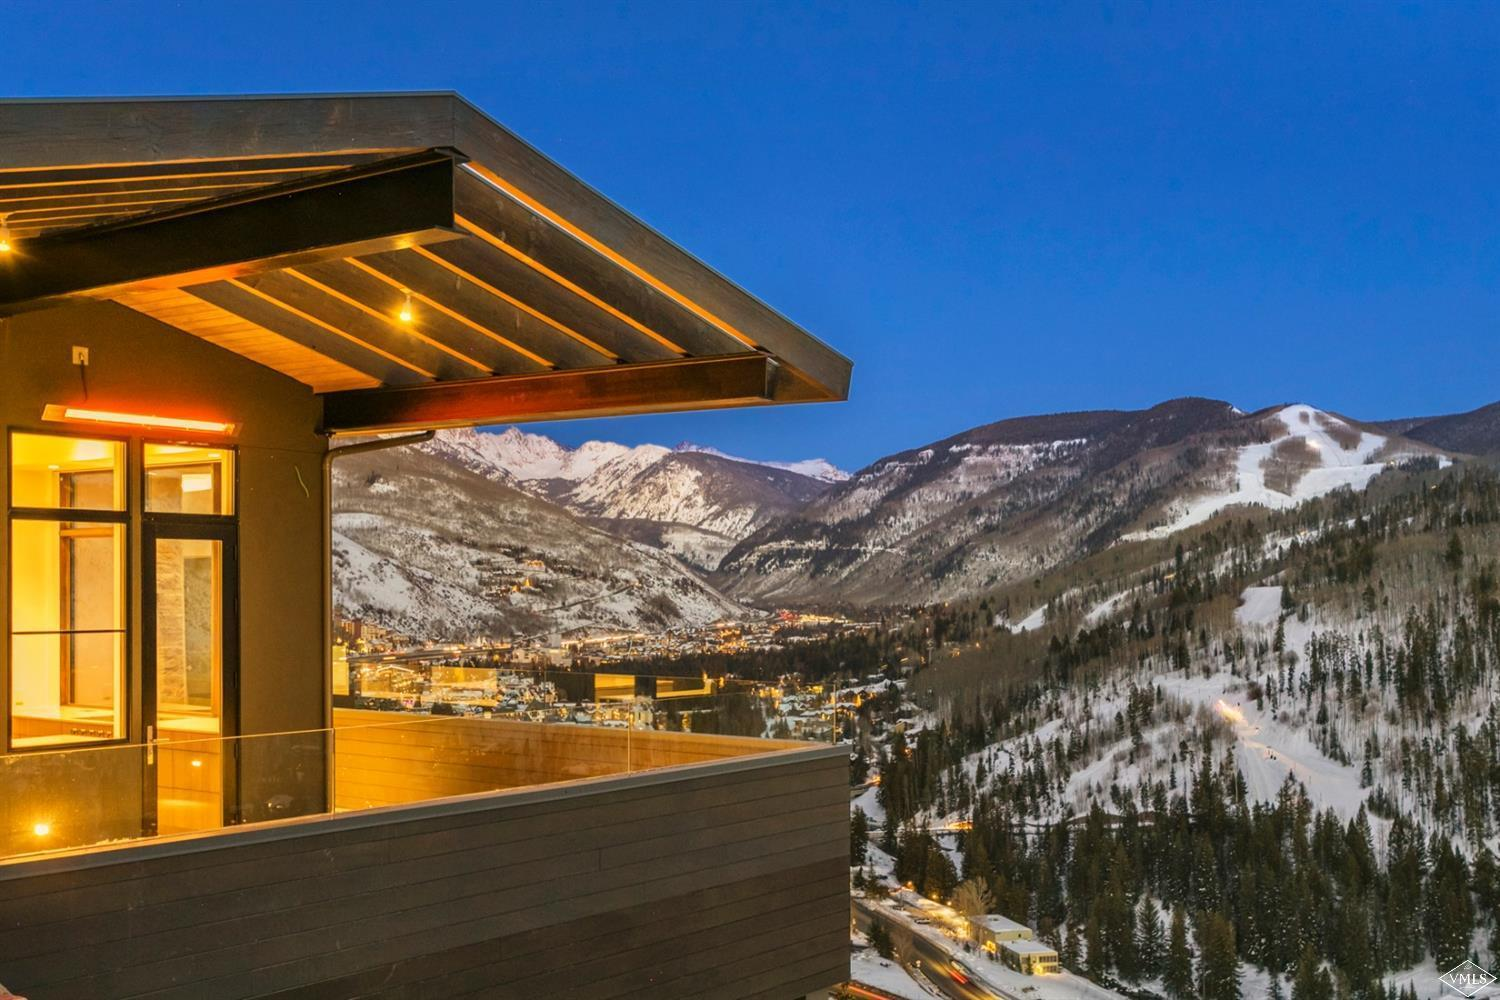 Vail's newest mountain luxury home with out of this world elevated views of the Gore Range, Vail Mountain and all the way to Beaver Creek. An open floor plan with double-sided gas fireplace ensures your family the quintessential modern lodge experience. Plus an outdoor fire pit and plunge pool to relax after a full day of mountain activities. Visit ClifftopVail.com/?mls to learn more.